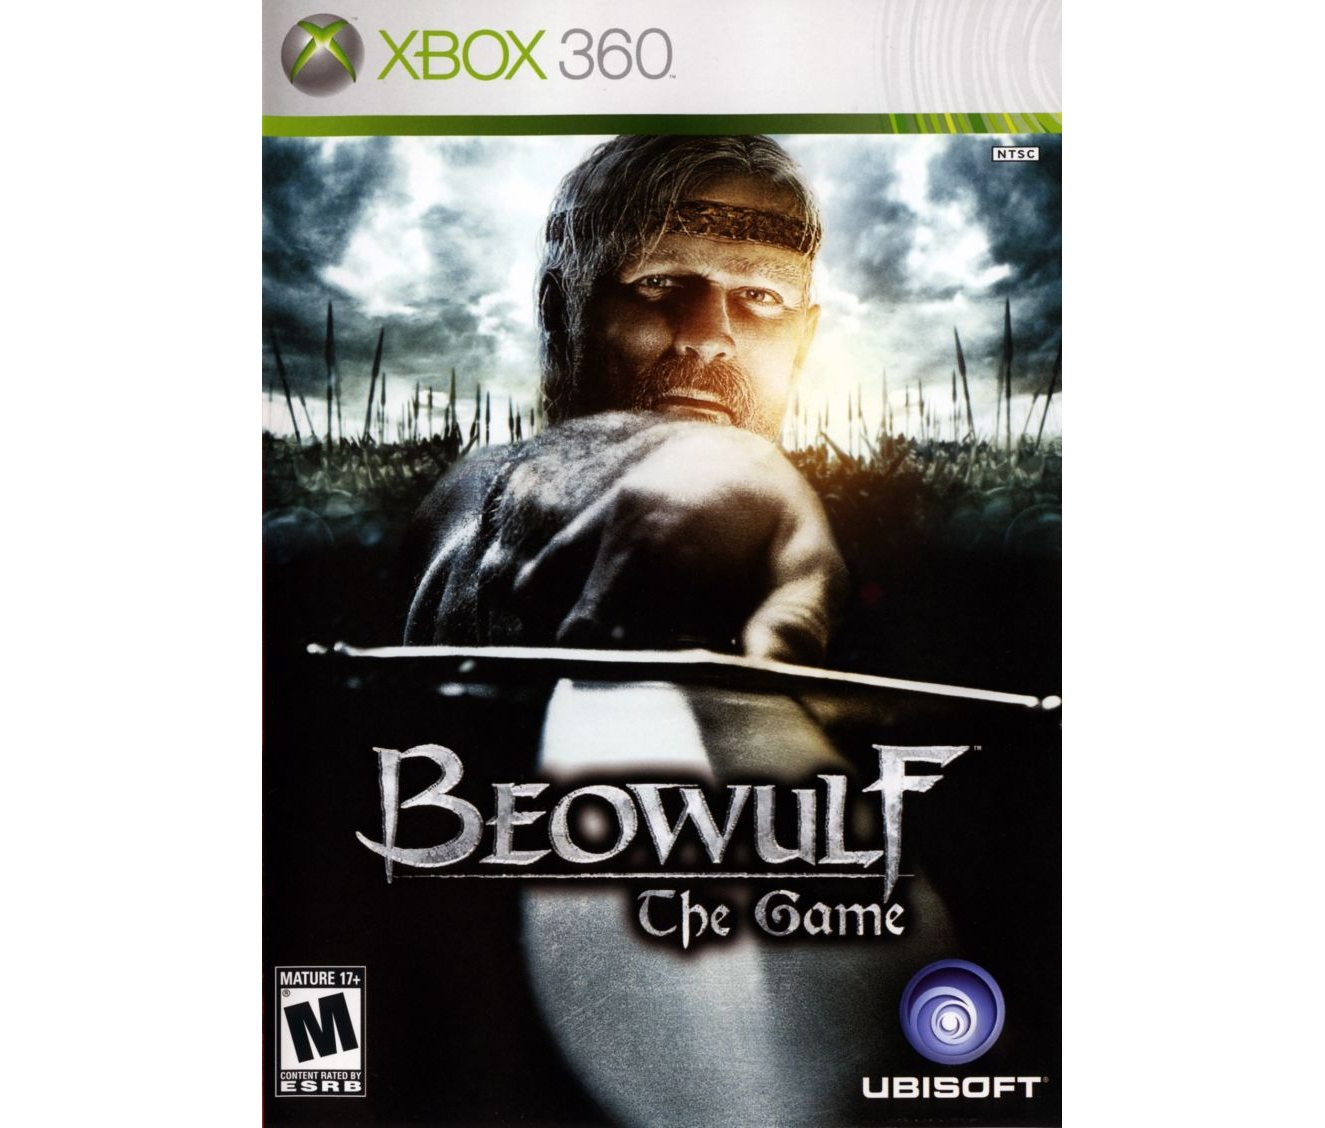 Xbox 360 Beowulf: The Game Xbox 360